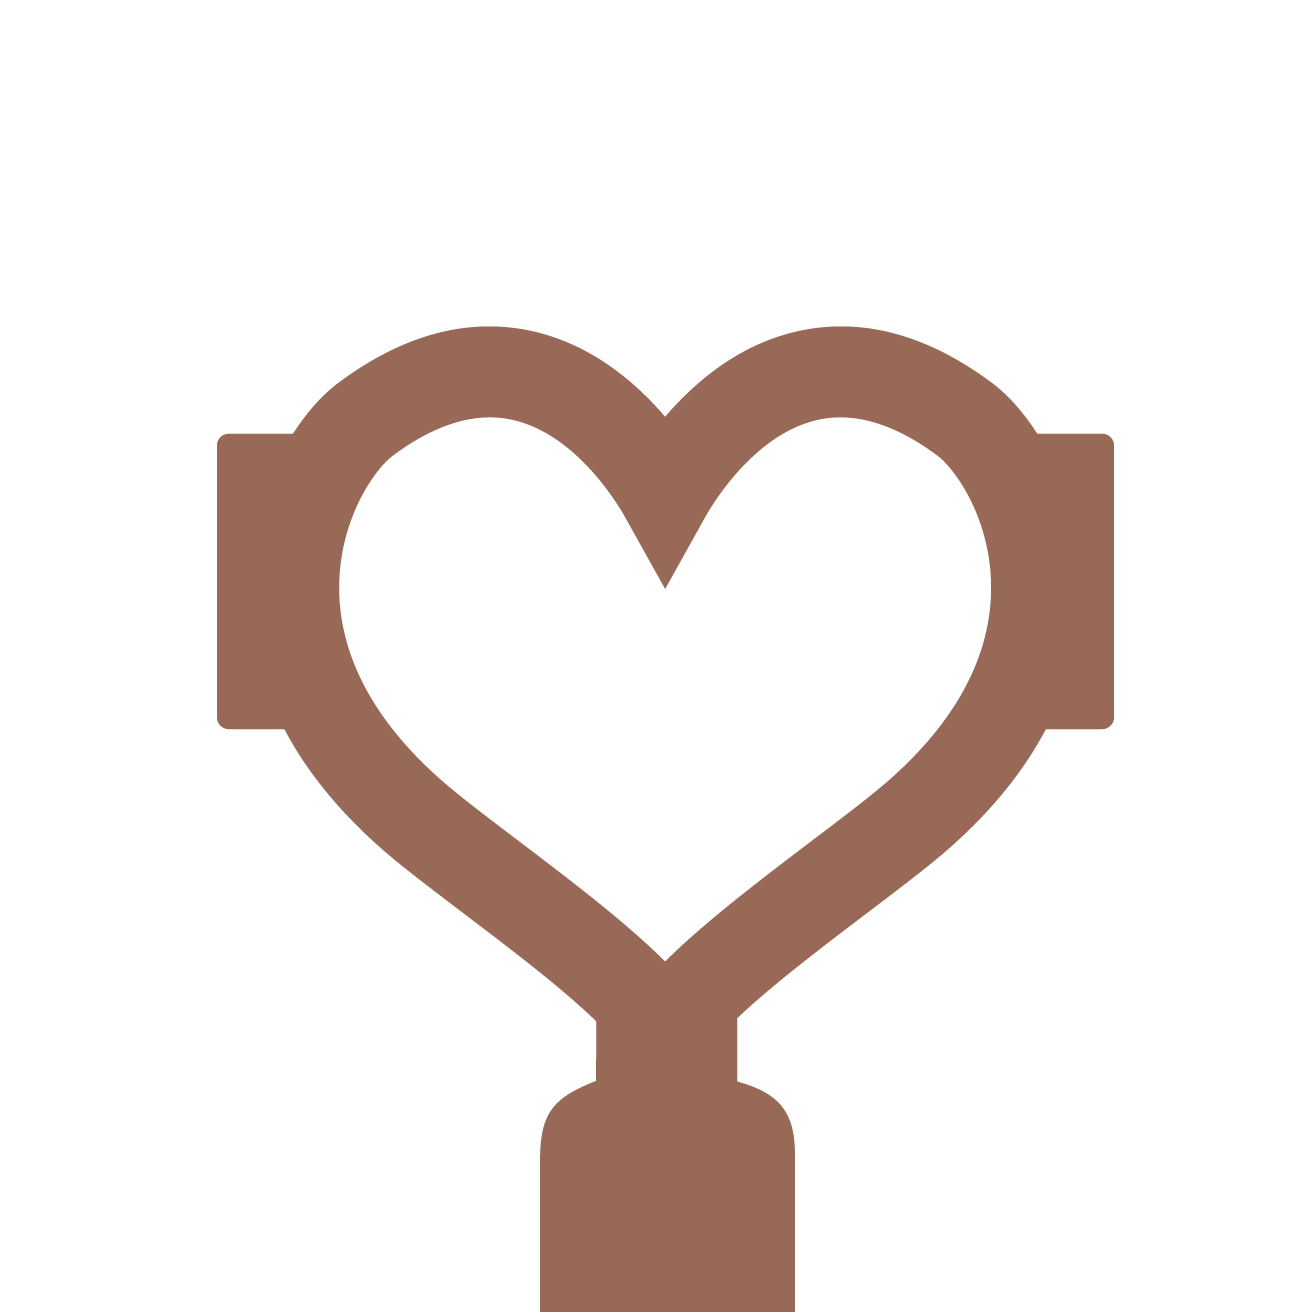 Lelit Mara 62 Delux - Espresso Machine and Grinder Package